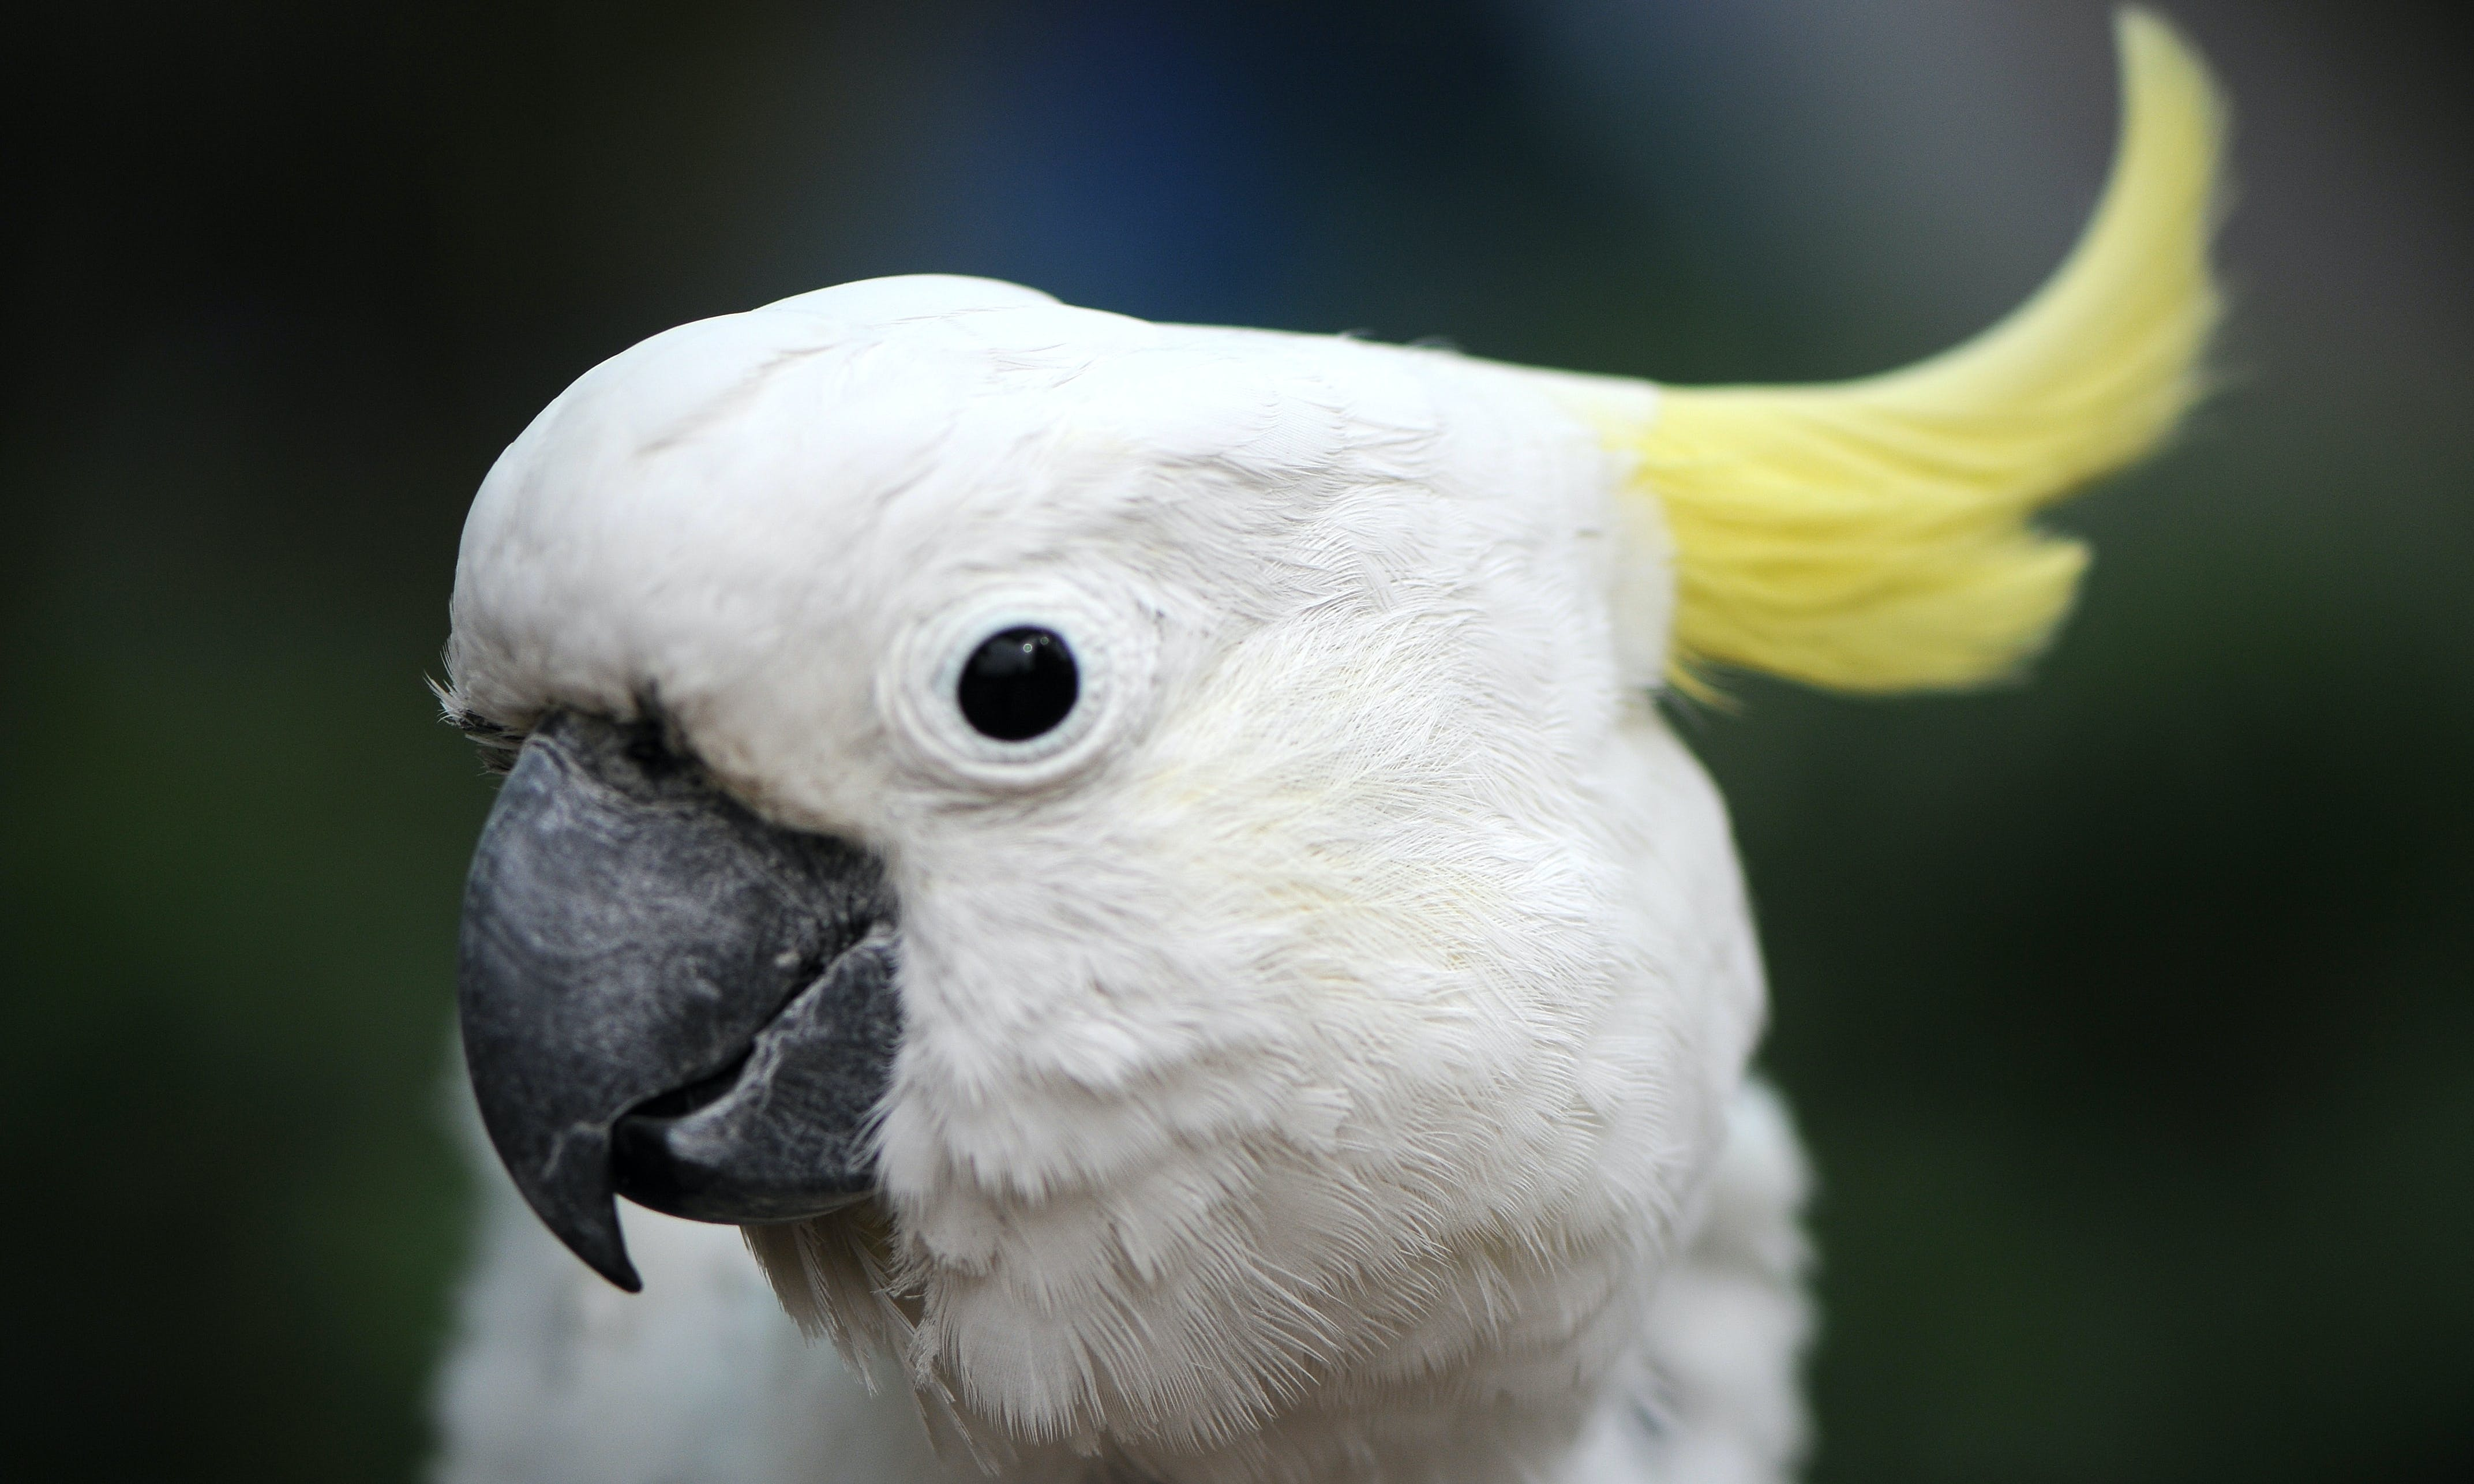 INDONESIA: What Happens to Pet Cockatoos Confiscated From Smugglers?